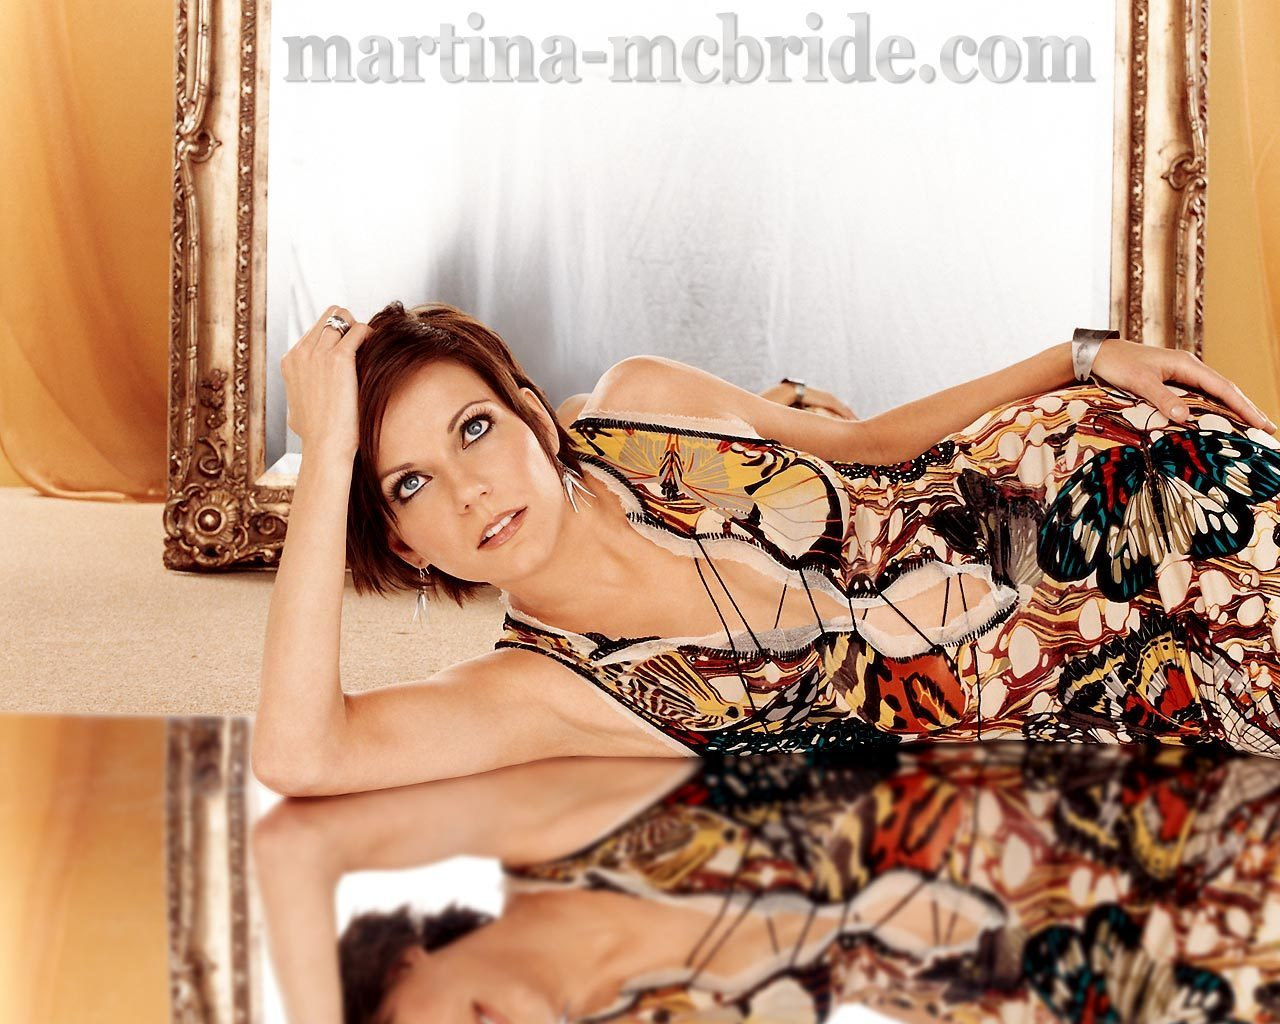 Martina McBride Wallpaper   Country Music Wallpaper 10596336 1280x1024